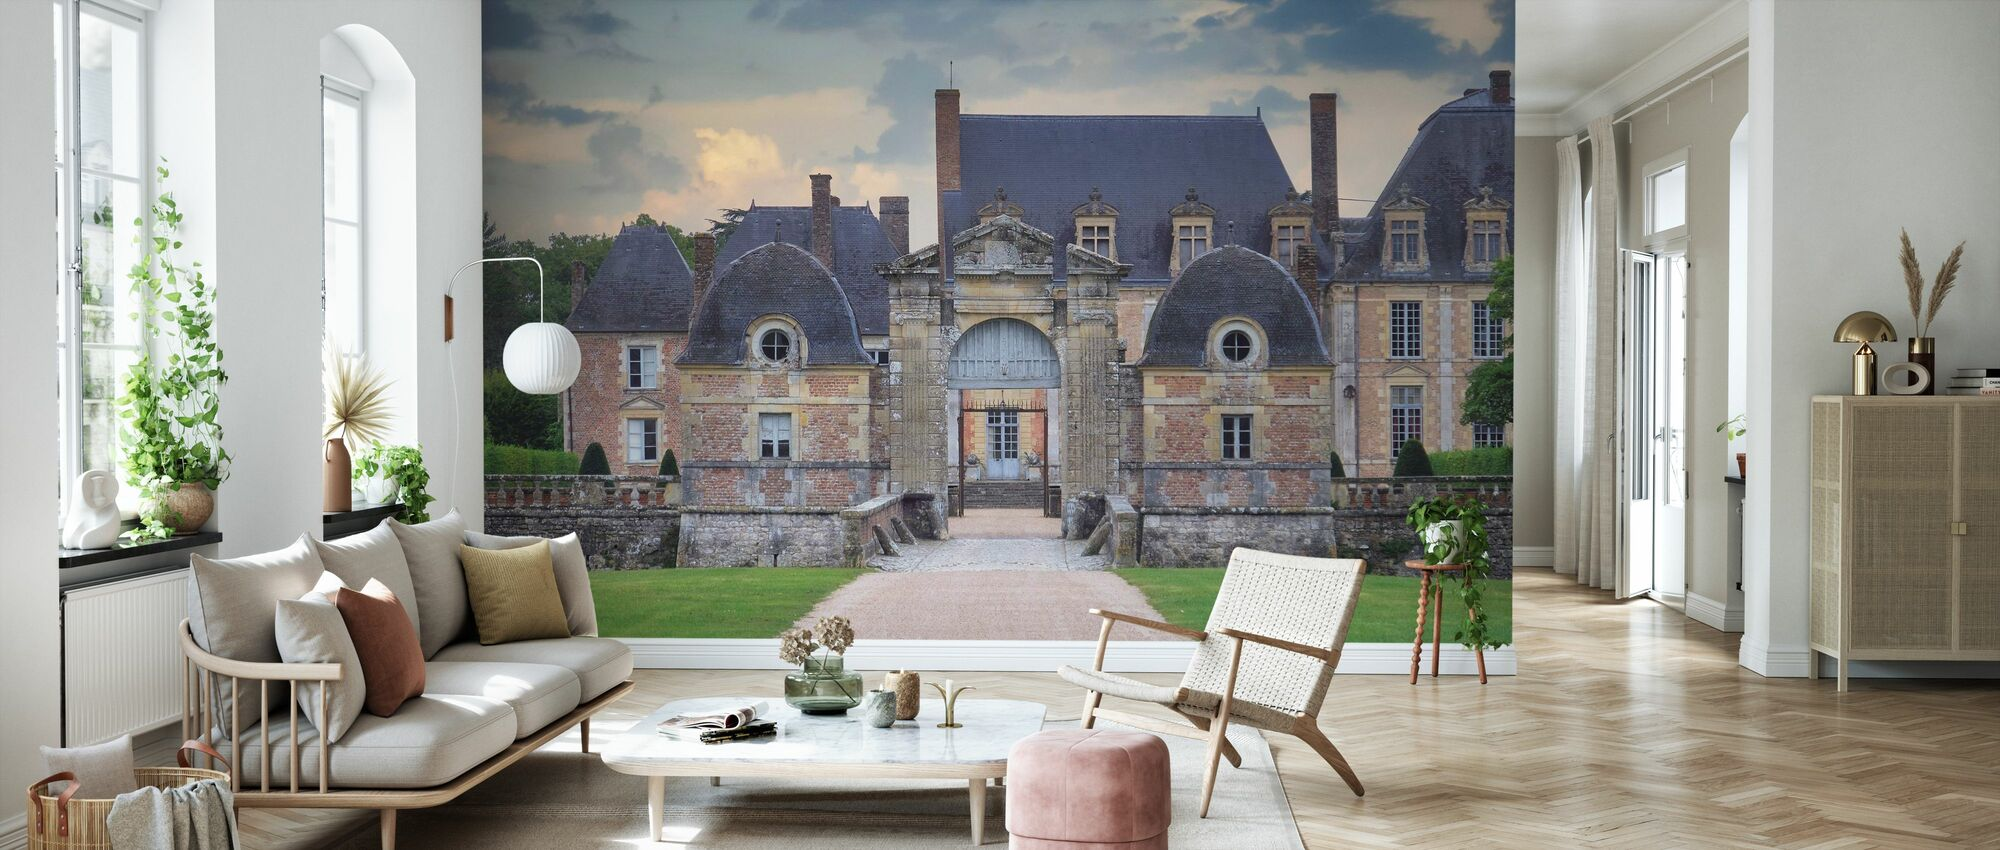 Castle with Gate - Wallpaper - Living Room